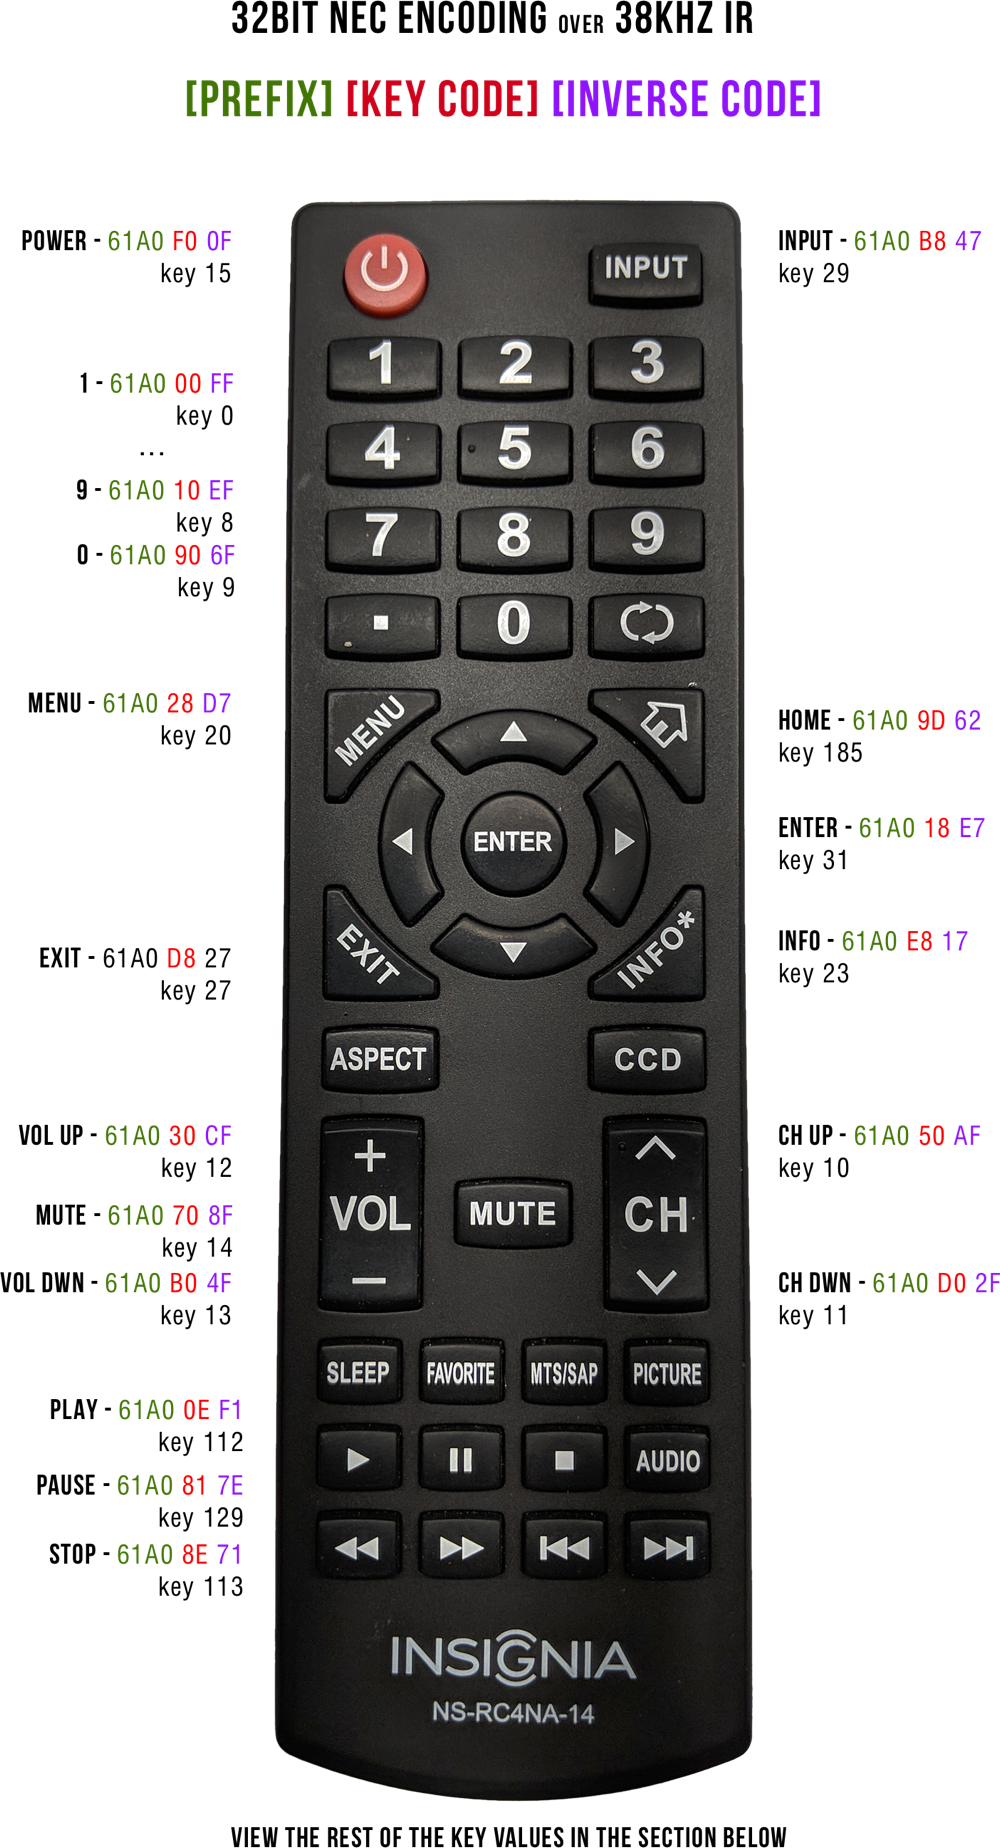 insignia ns-rc4na-14 remote labelled with IR NEC codes